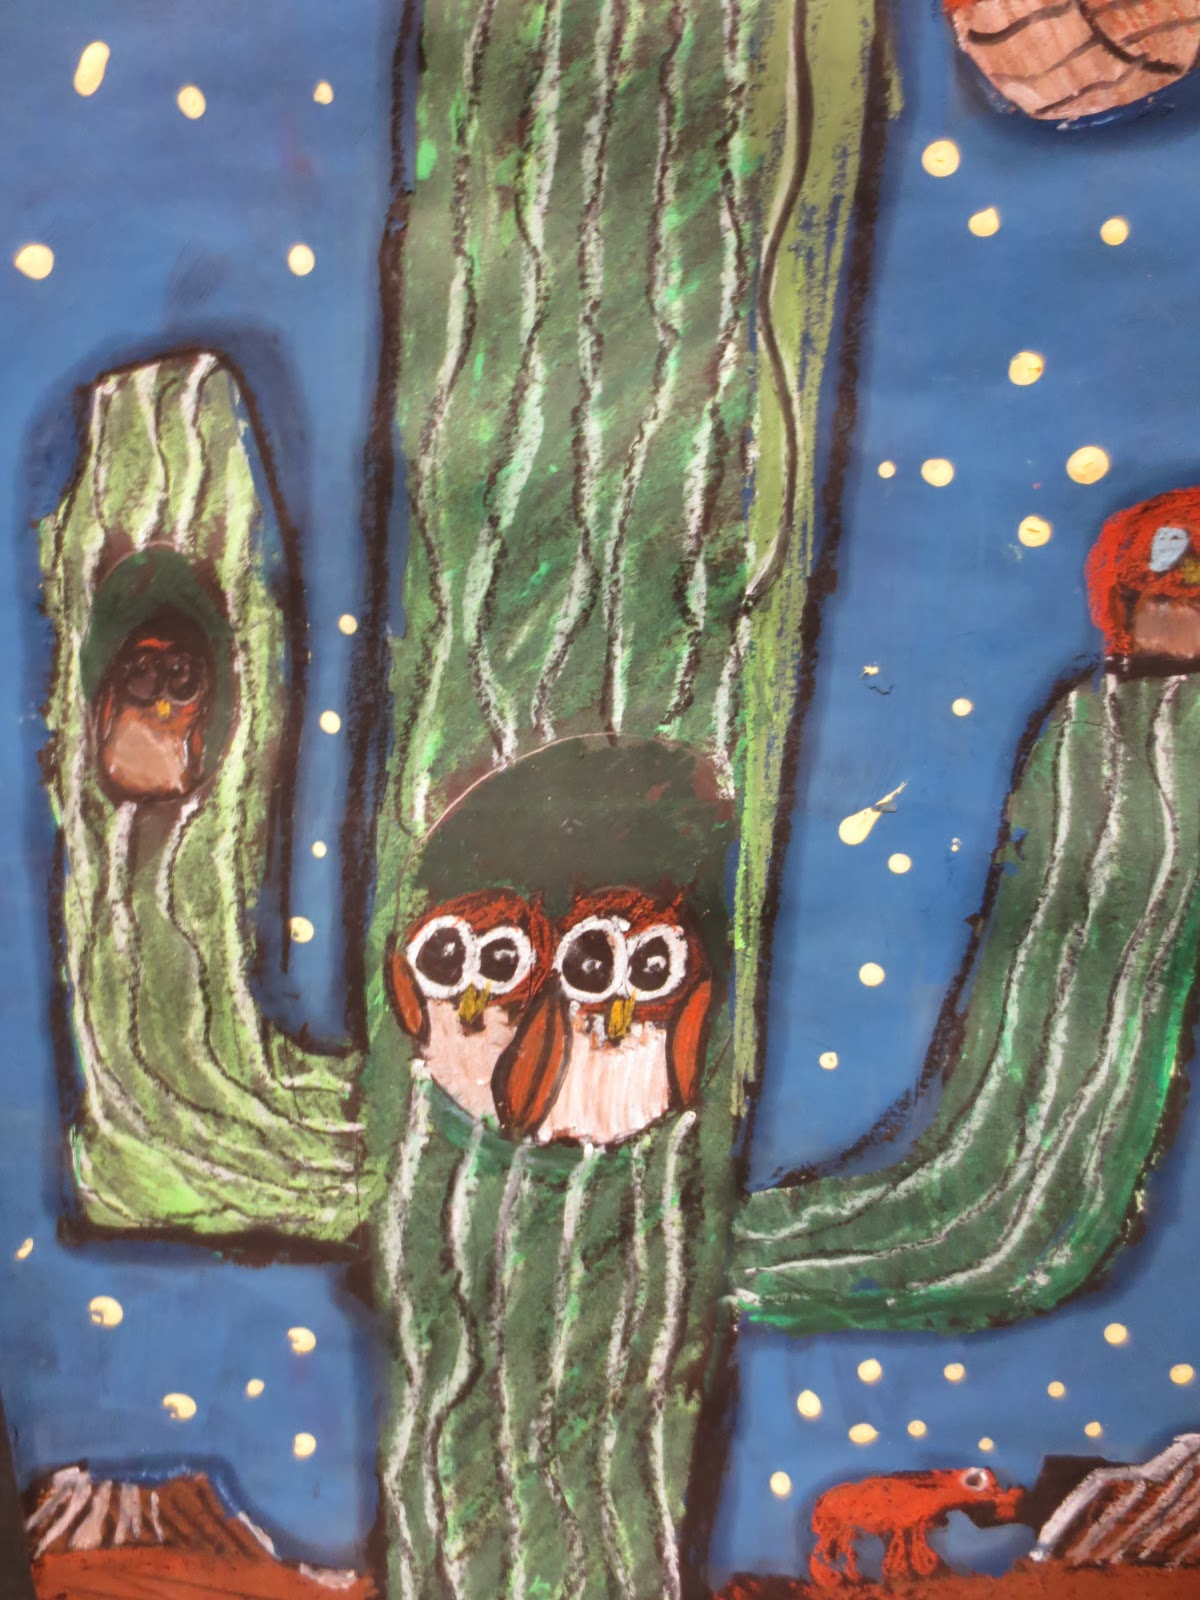 We give a HOOT about our ART!